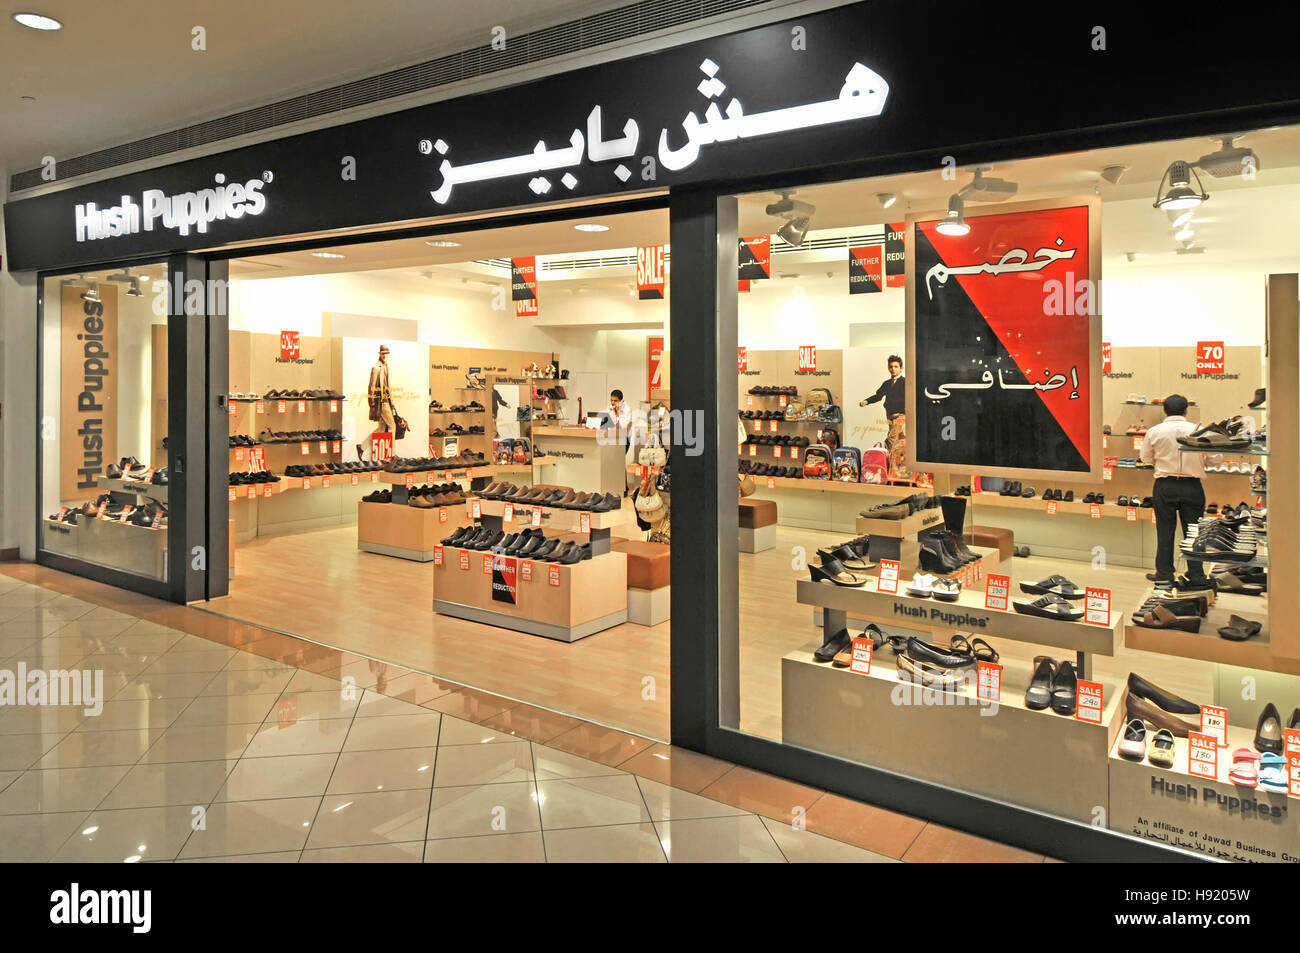 shop in abu dhabi uae middle east marina shopping mall hush puppies stock photo royalty free. Black Bedroom Furniture Sets. Home Design Ideas